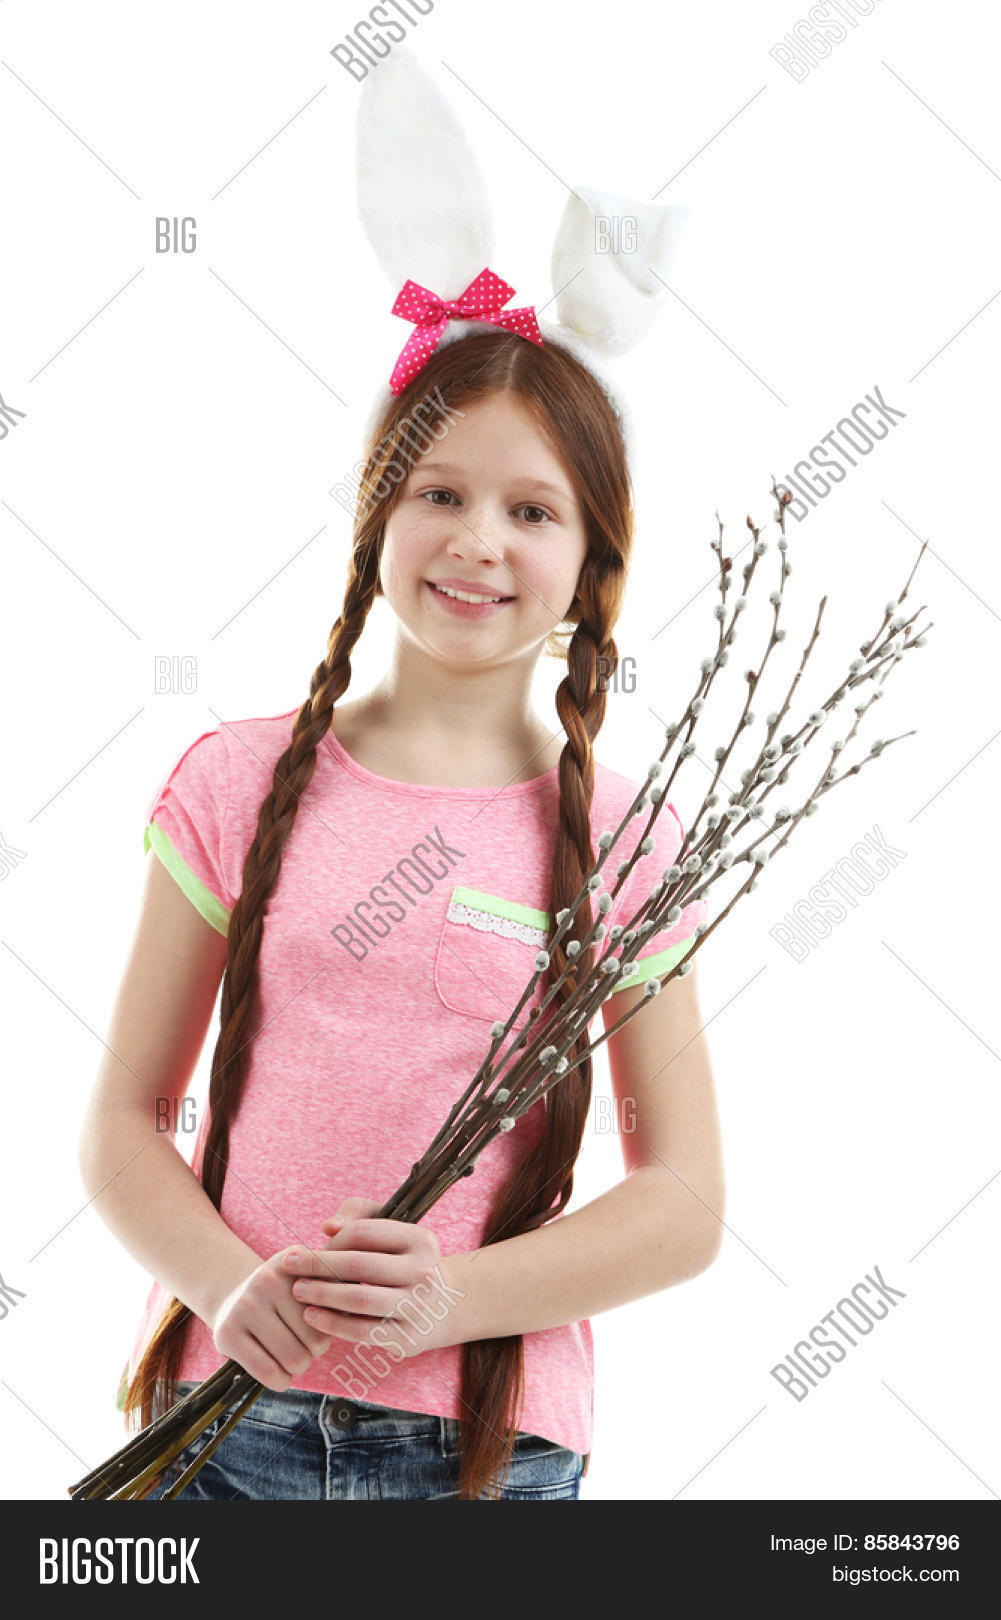 beautiful little girl pussy-willow image & photo | bigstock